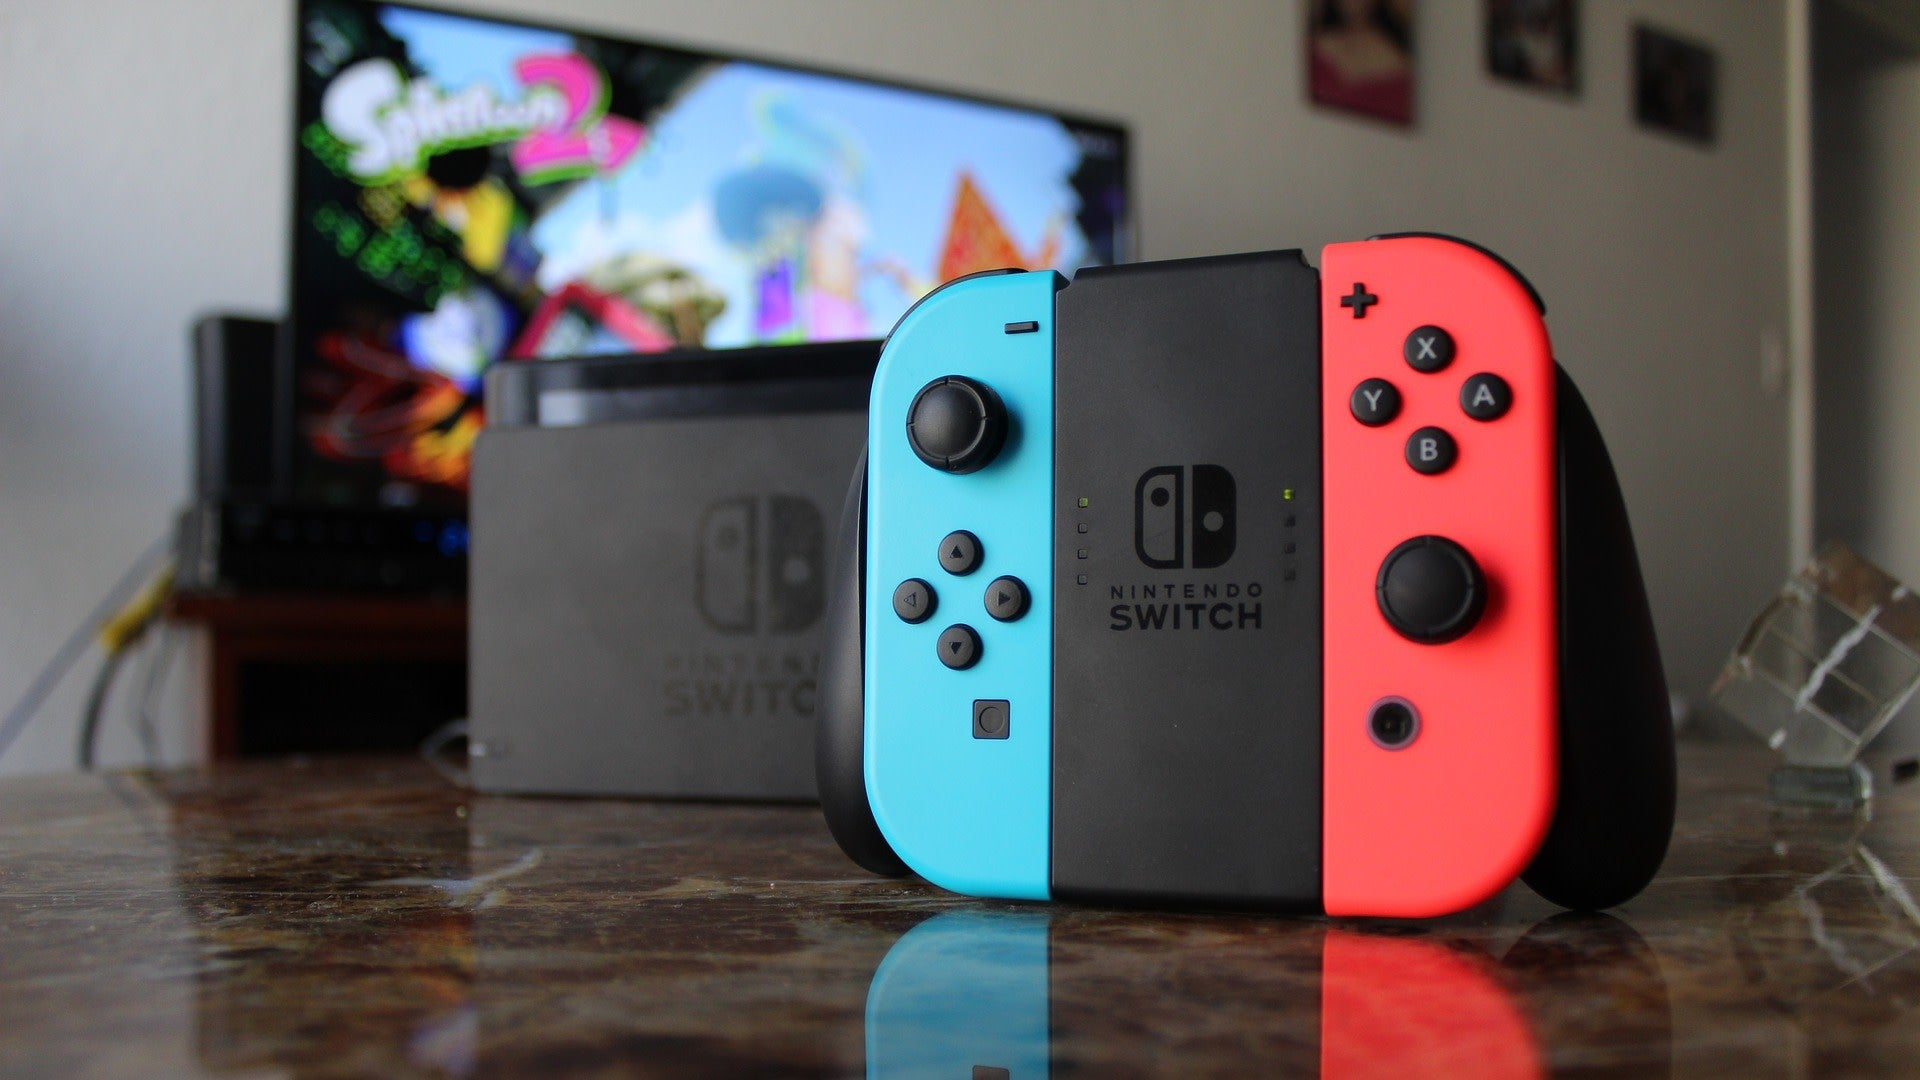 How To Spot The New Nintendo Switch With Better Battery Life, And Avoid Accidentally Buying The Old One